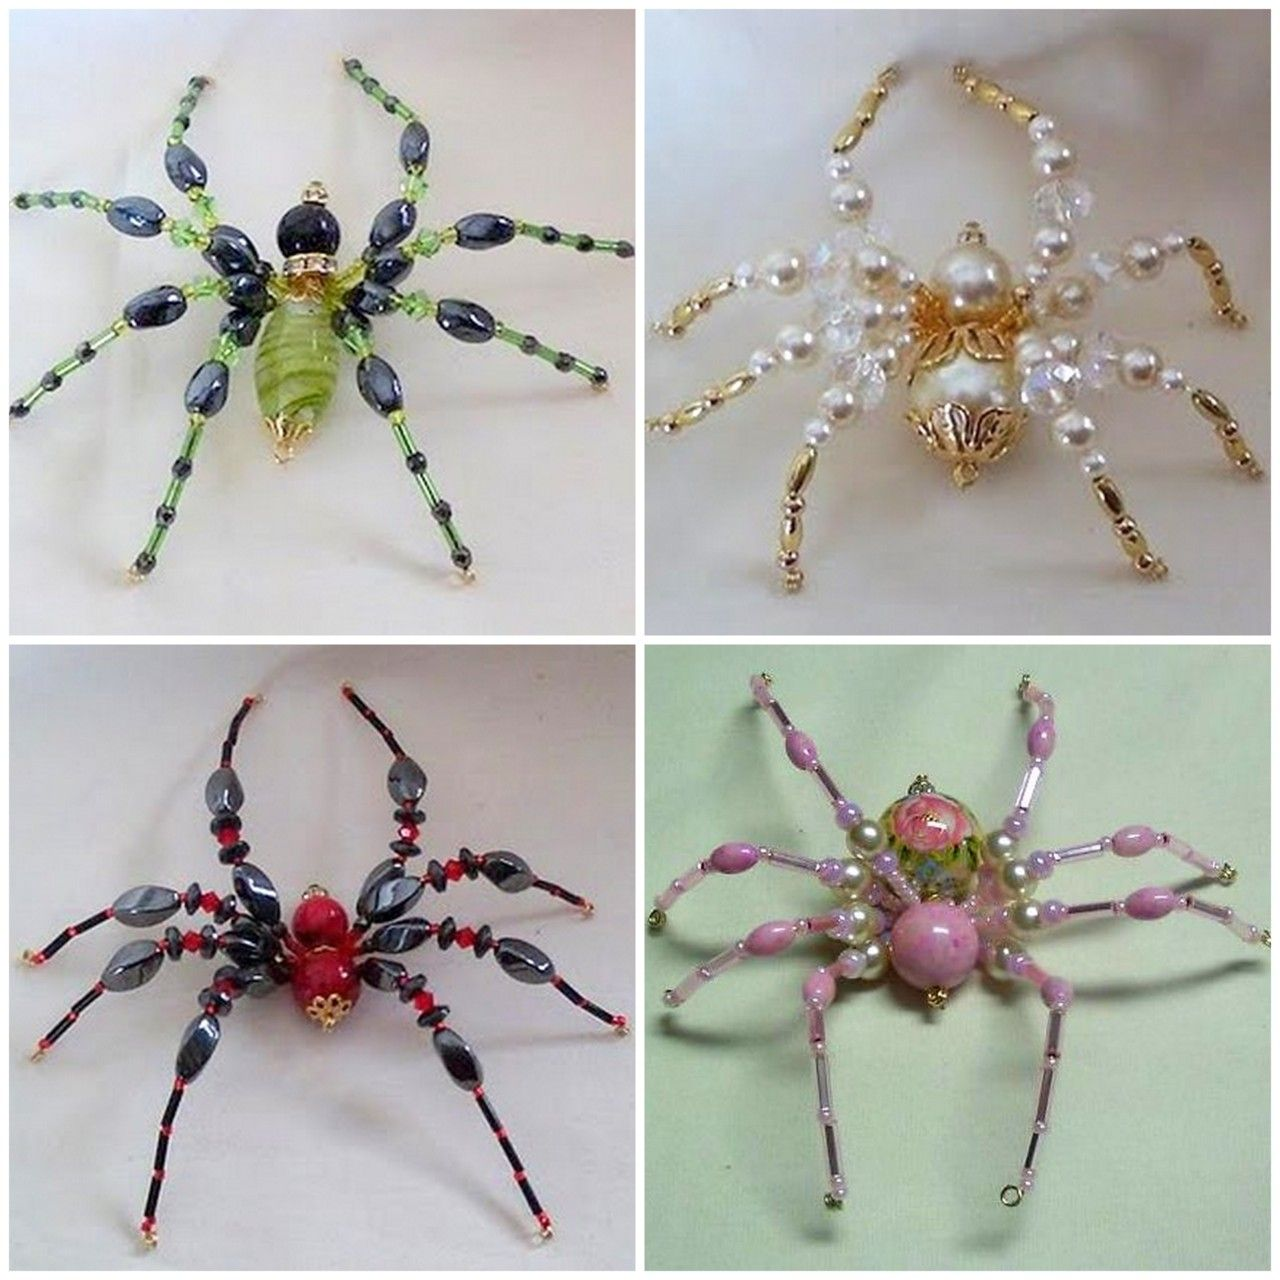 DIY Beaded Spiders. Great Tutorial on how to make these insects ...